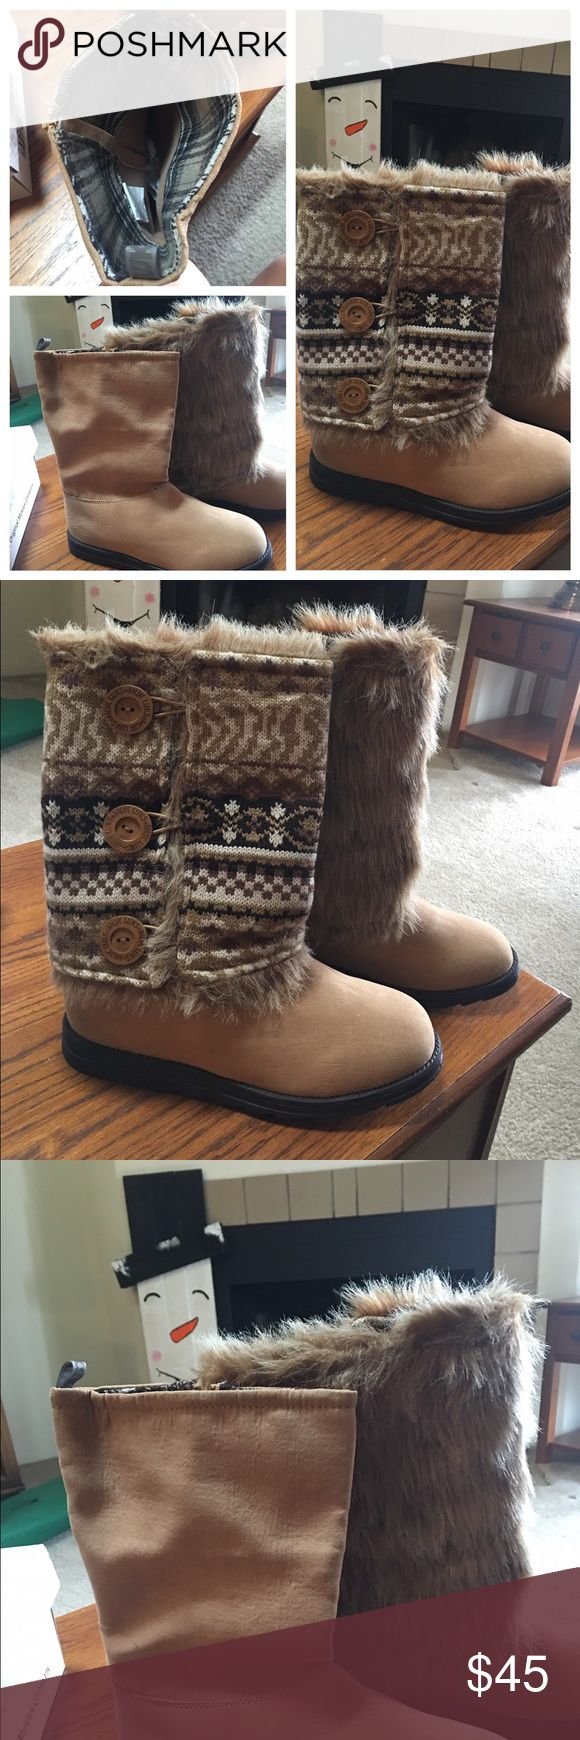 MUK LUK versatile boots BRAND NEW NEVER WORN! These boots can be worn multiple ways as shown. Size 9! Muk Luks Shoes Winter & Rain Boots